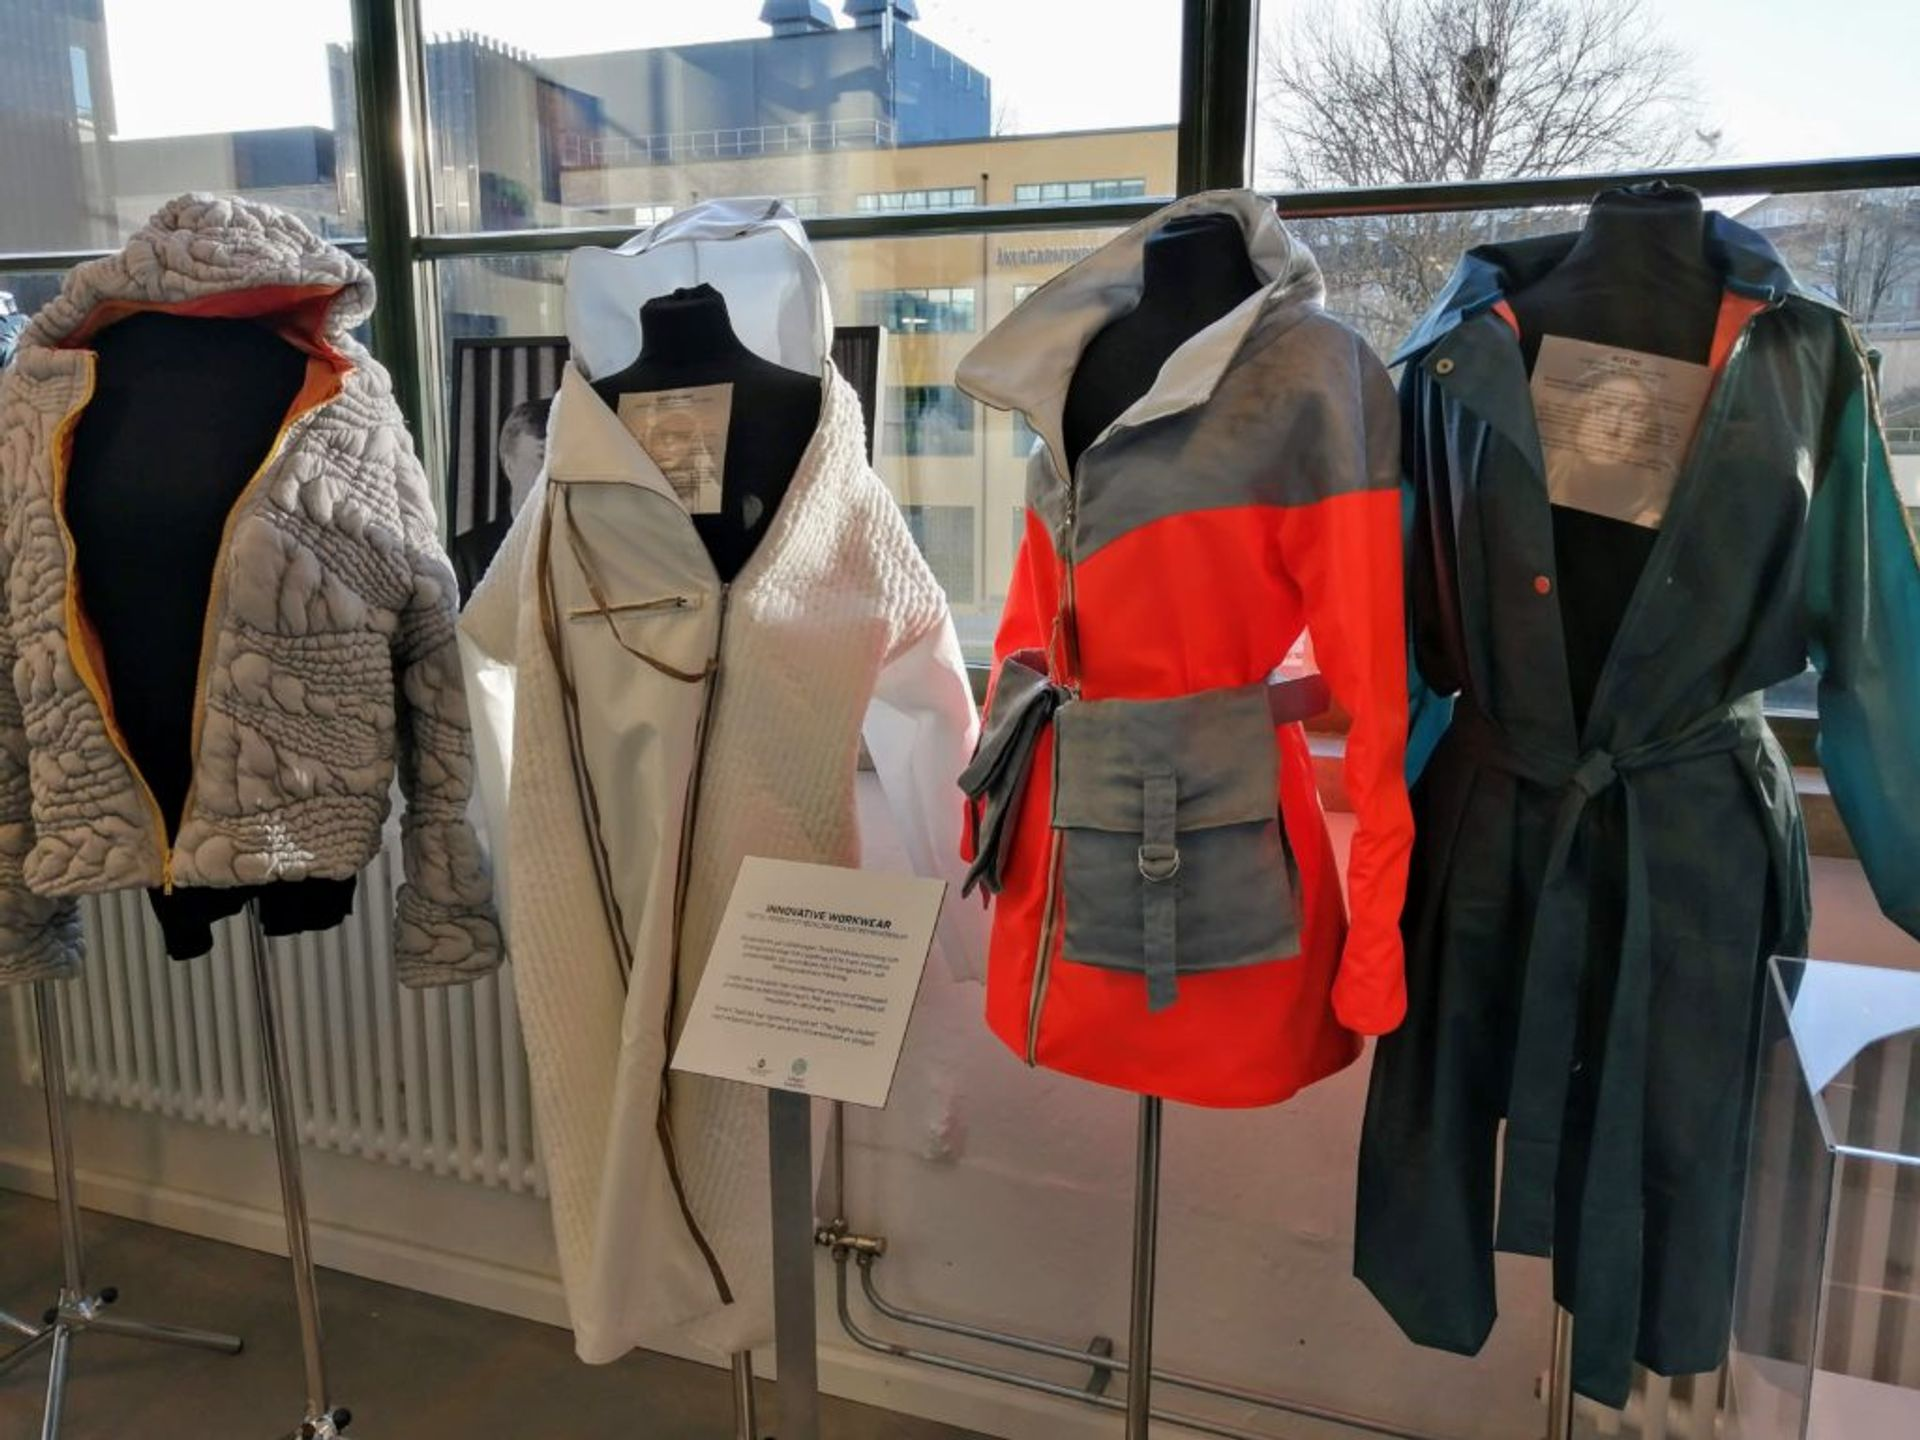 Jackets made out of different materials.